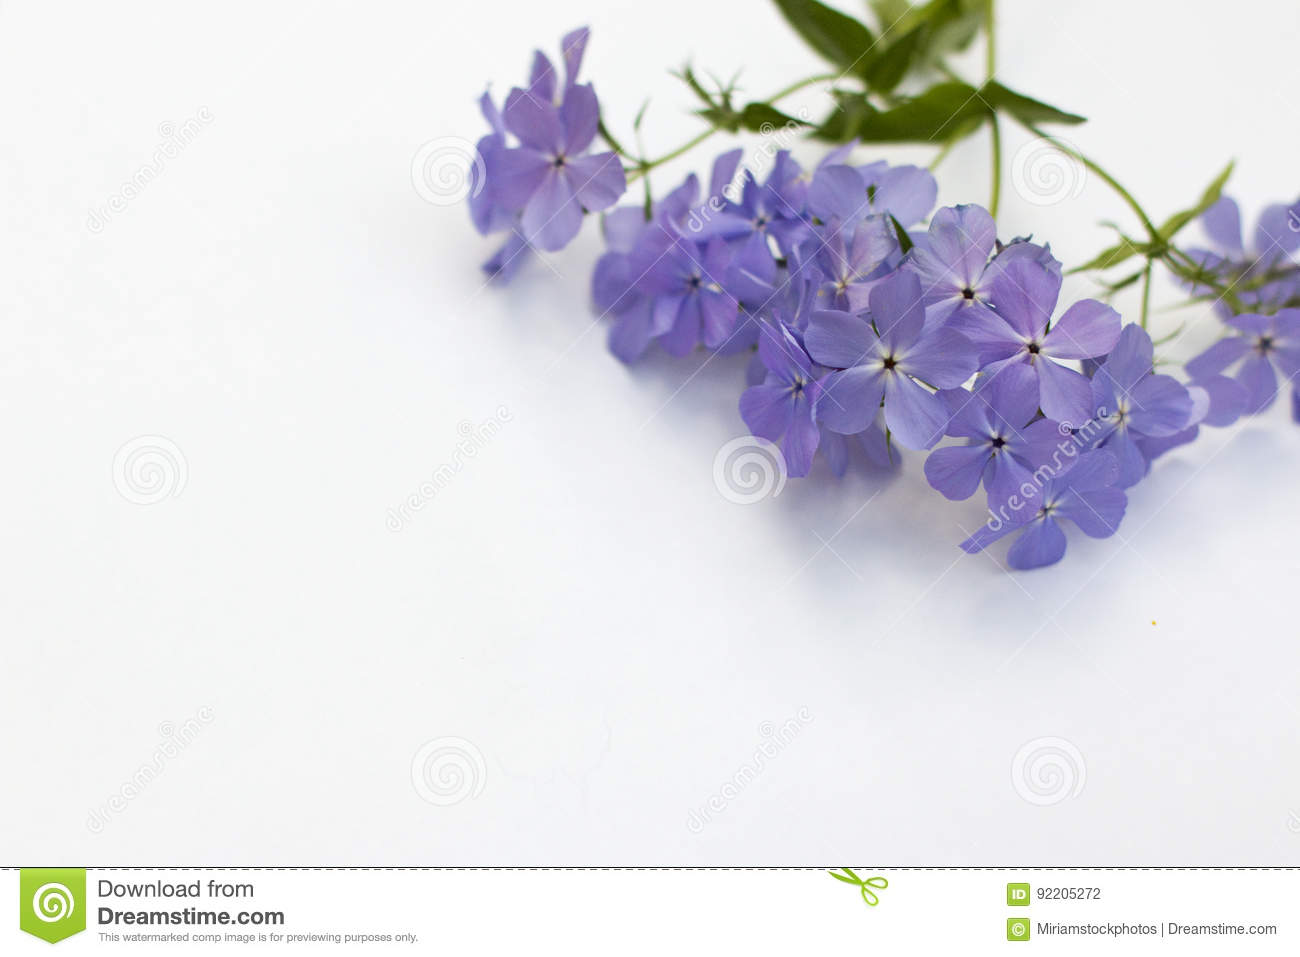 Phlox blue moon flowers on white background stock photo image of download phlox blue moon flowers on white background stock photo image of white color izmirmasajfo